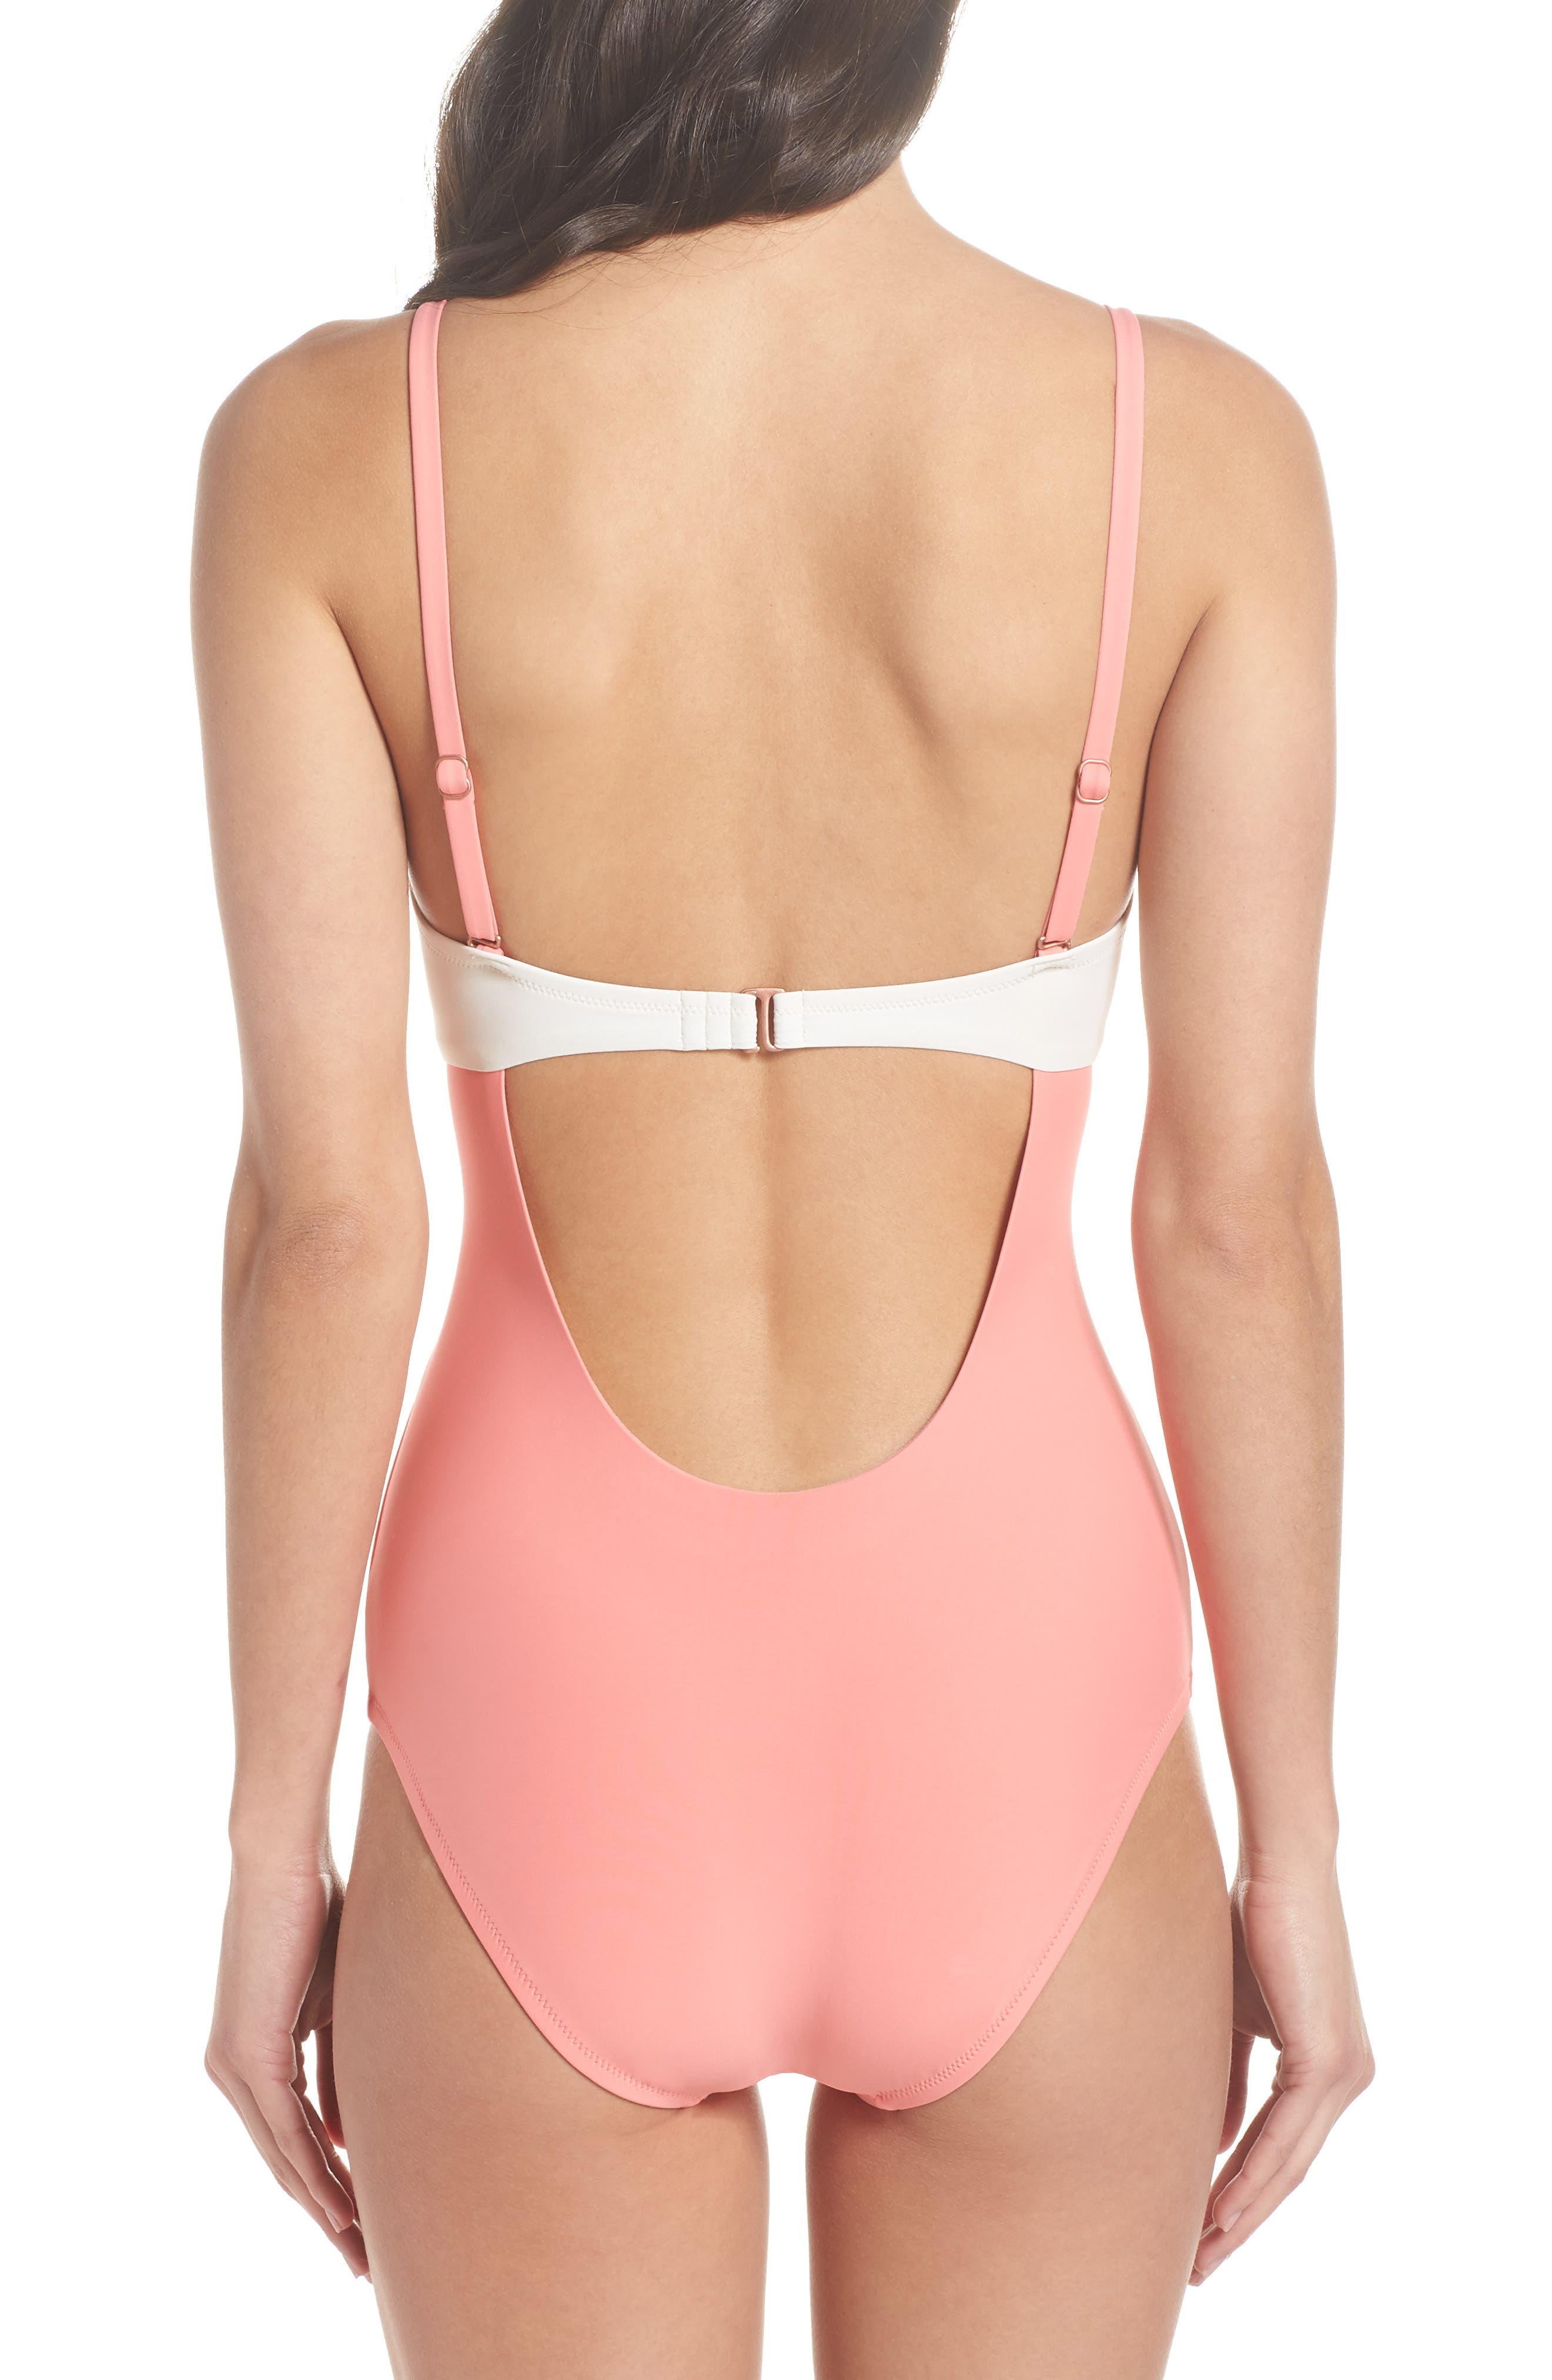 Scallop Bandeau One-Piece Swimsuit,                             Alternate thumbnail 6, color,                             Coral Shell / Ivory Egret